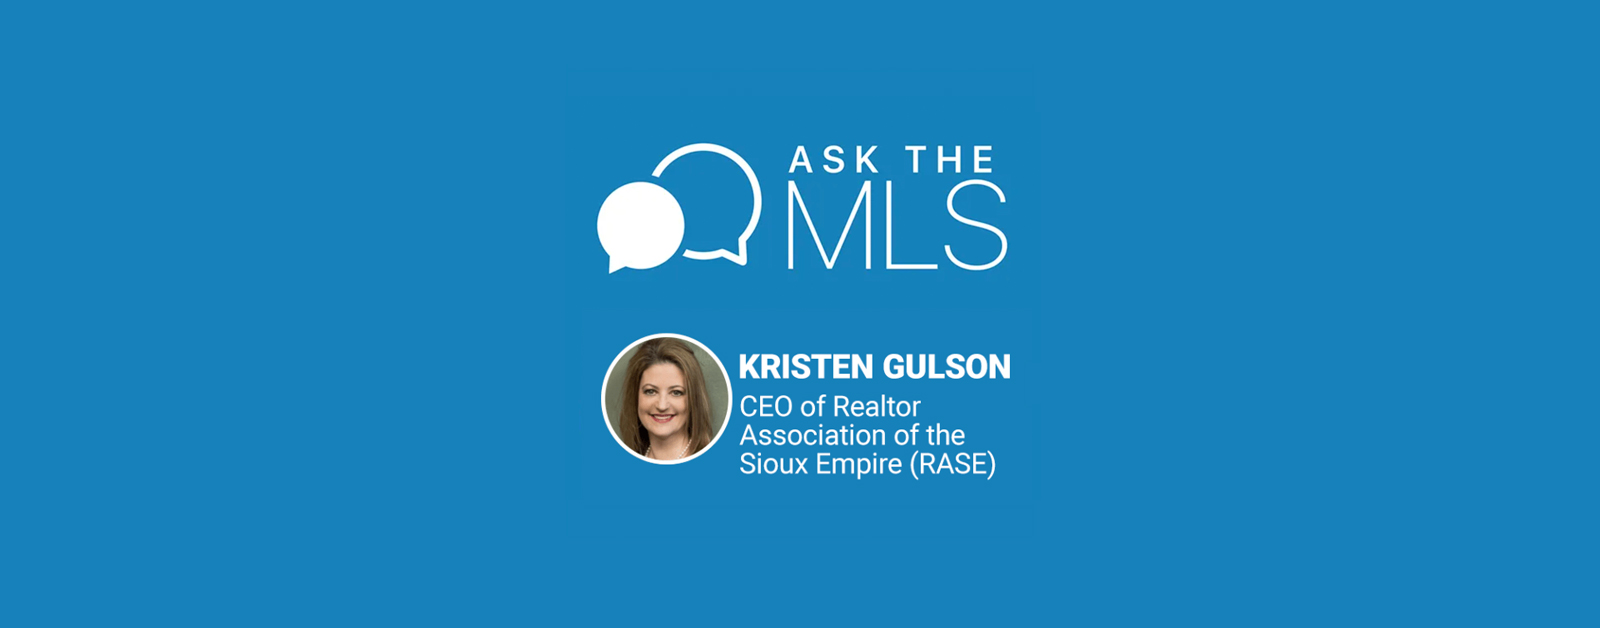 ASK THE MLS: Kristen Gulson